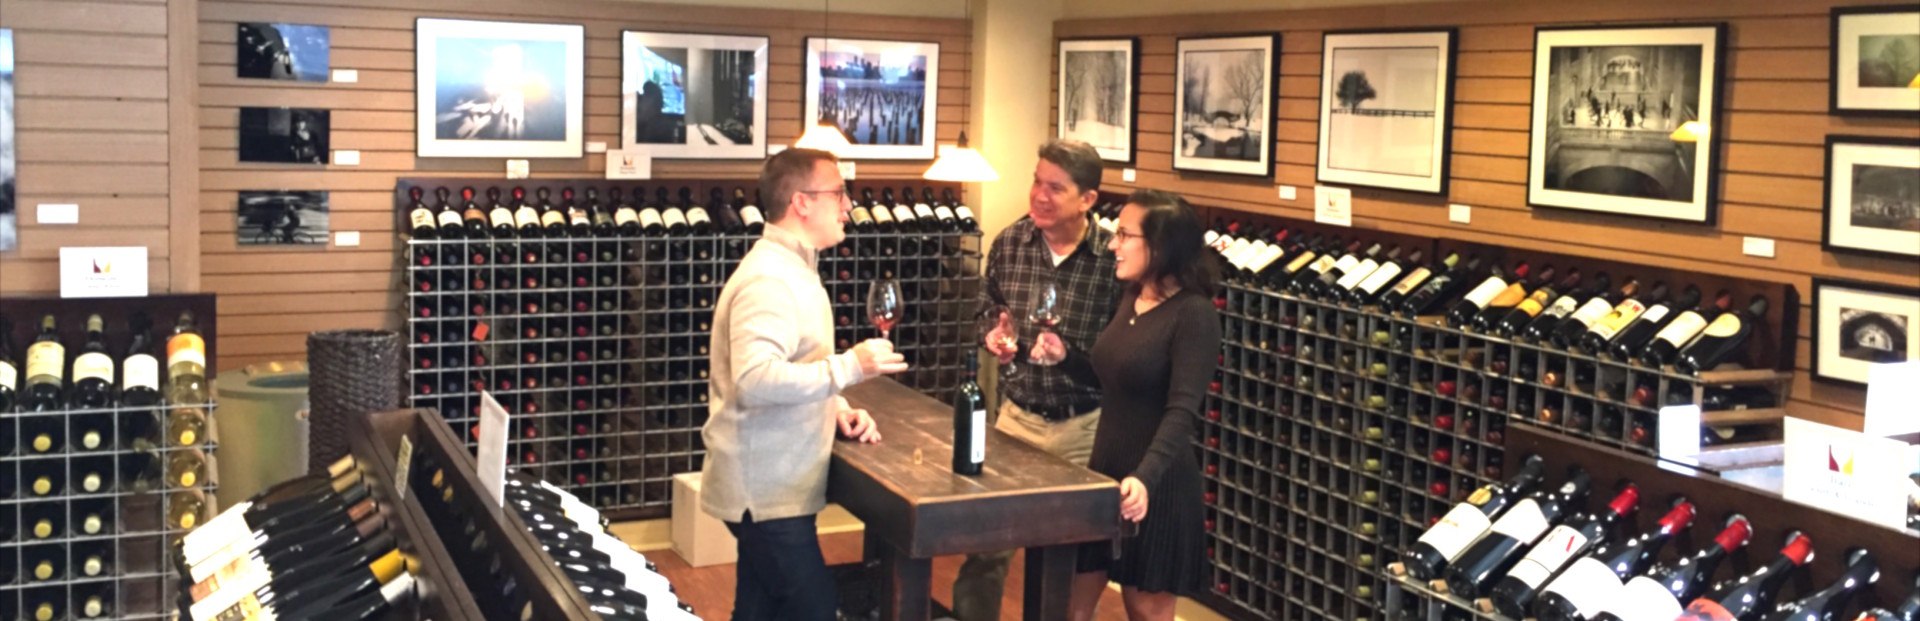 A look behind those great people and amazing bottles at Vintology Wine & Spirits.